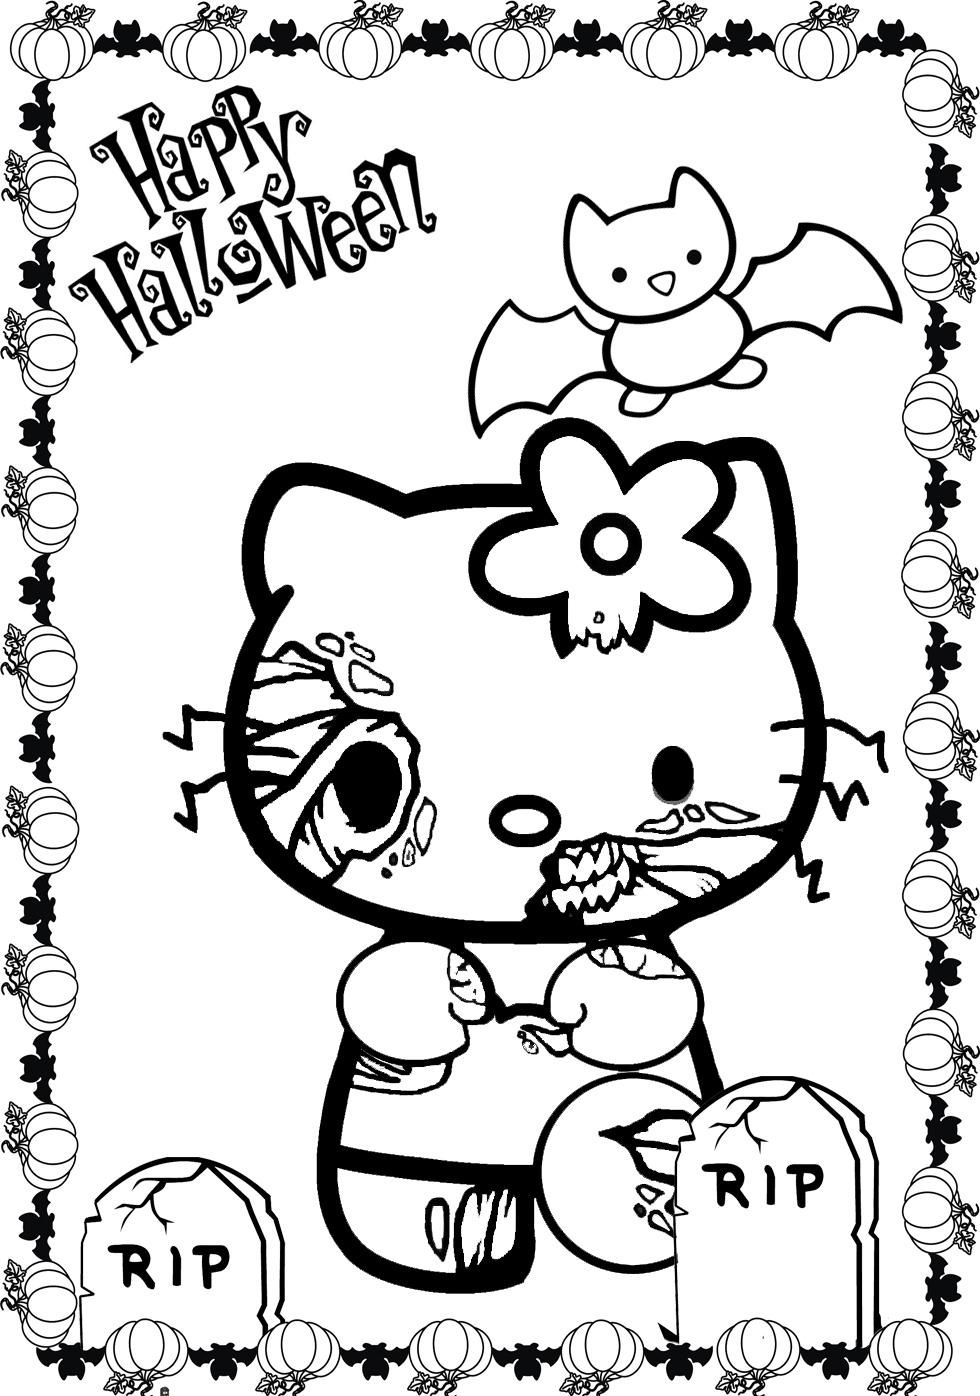 Cartoon coloring scary halloween hello kitty coloring pages scary halloween hello kitty coloring pagesfull size image